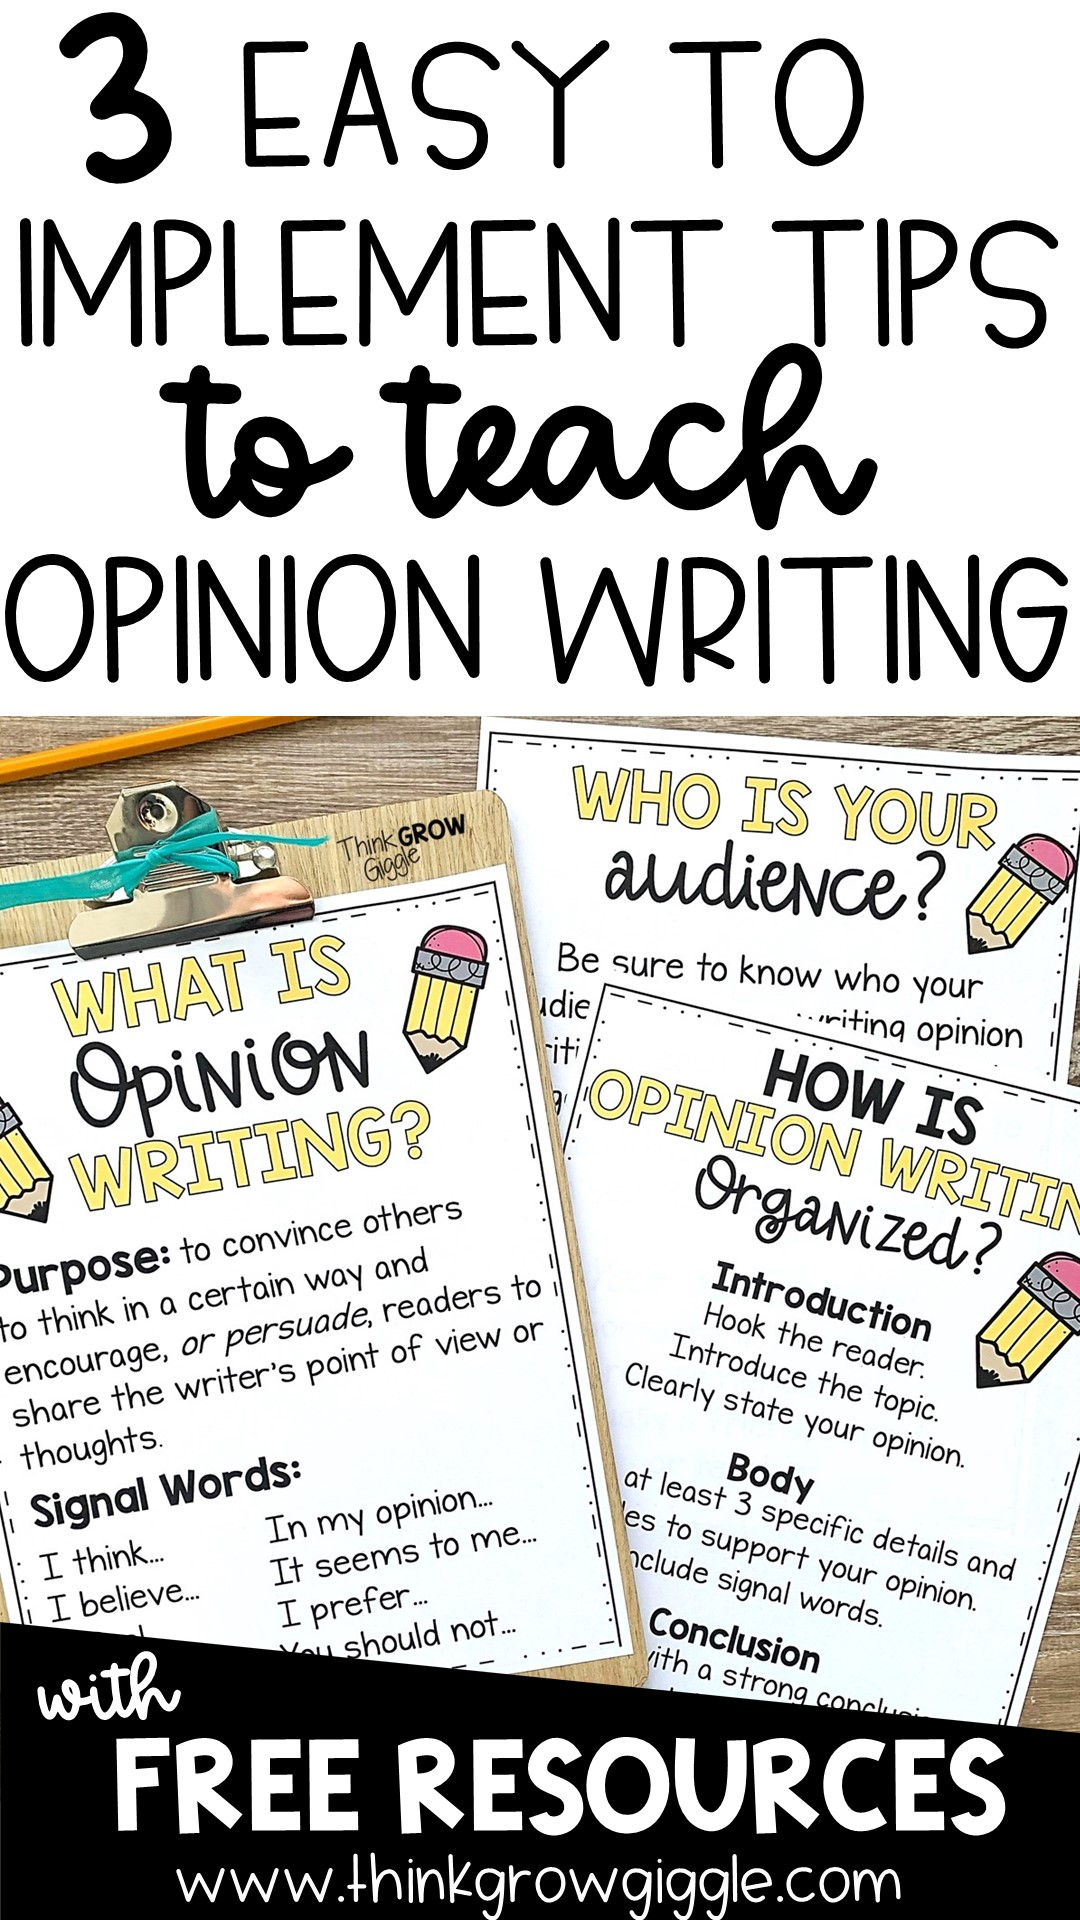 opinion writing activities for upper elementary students